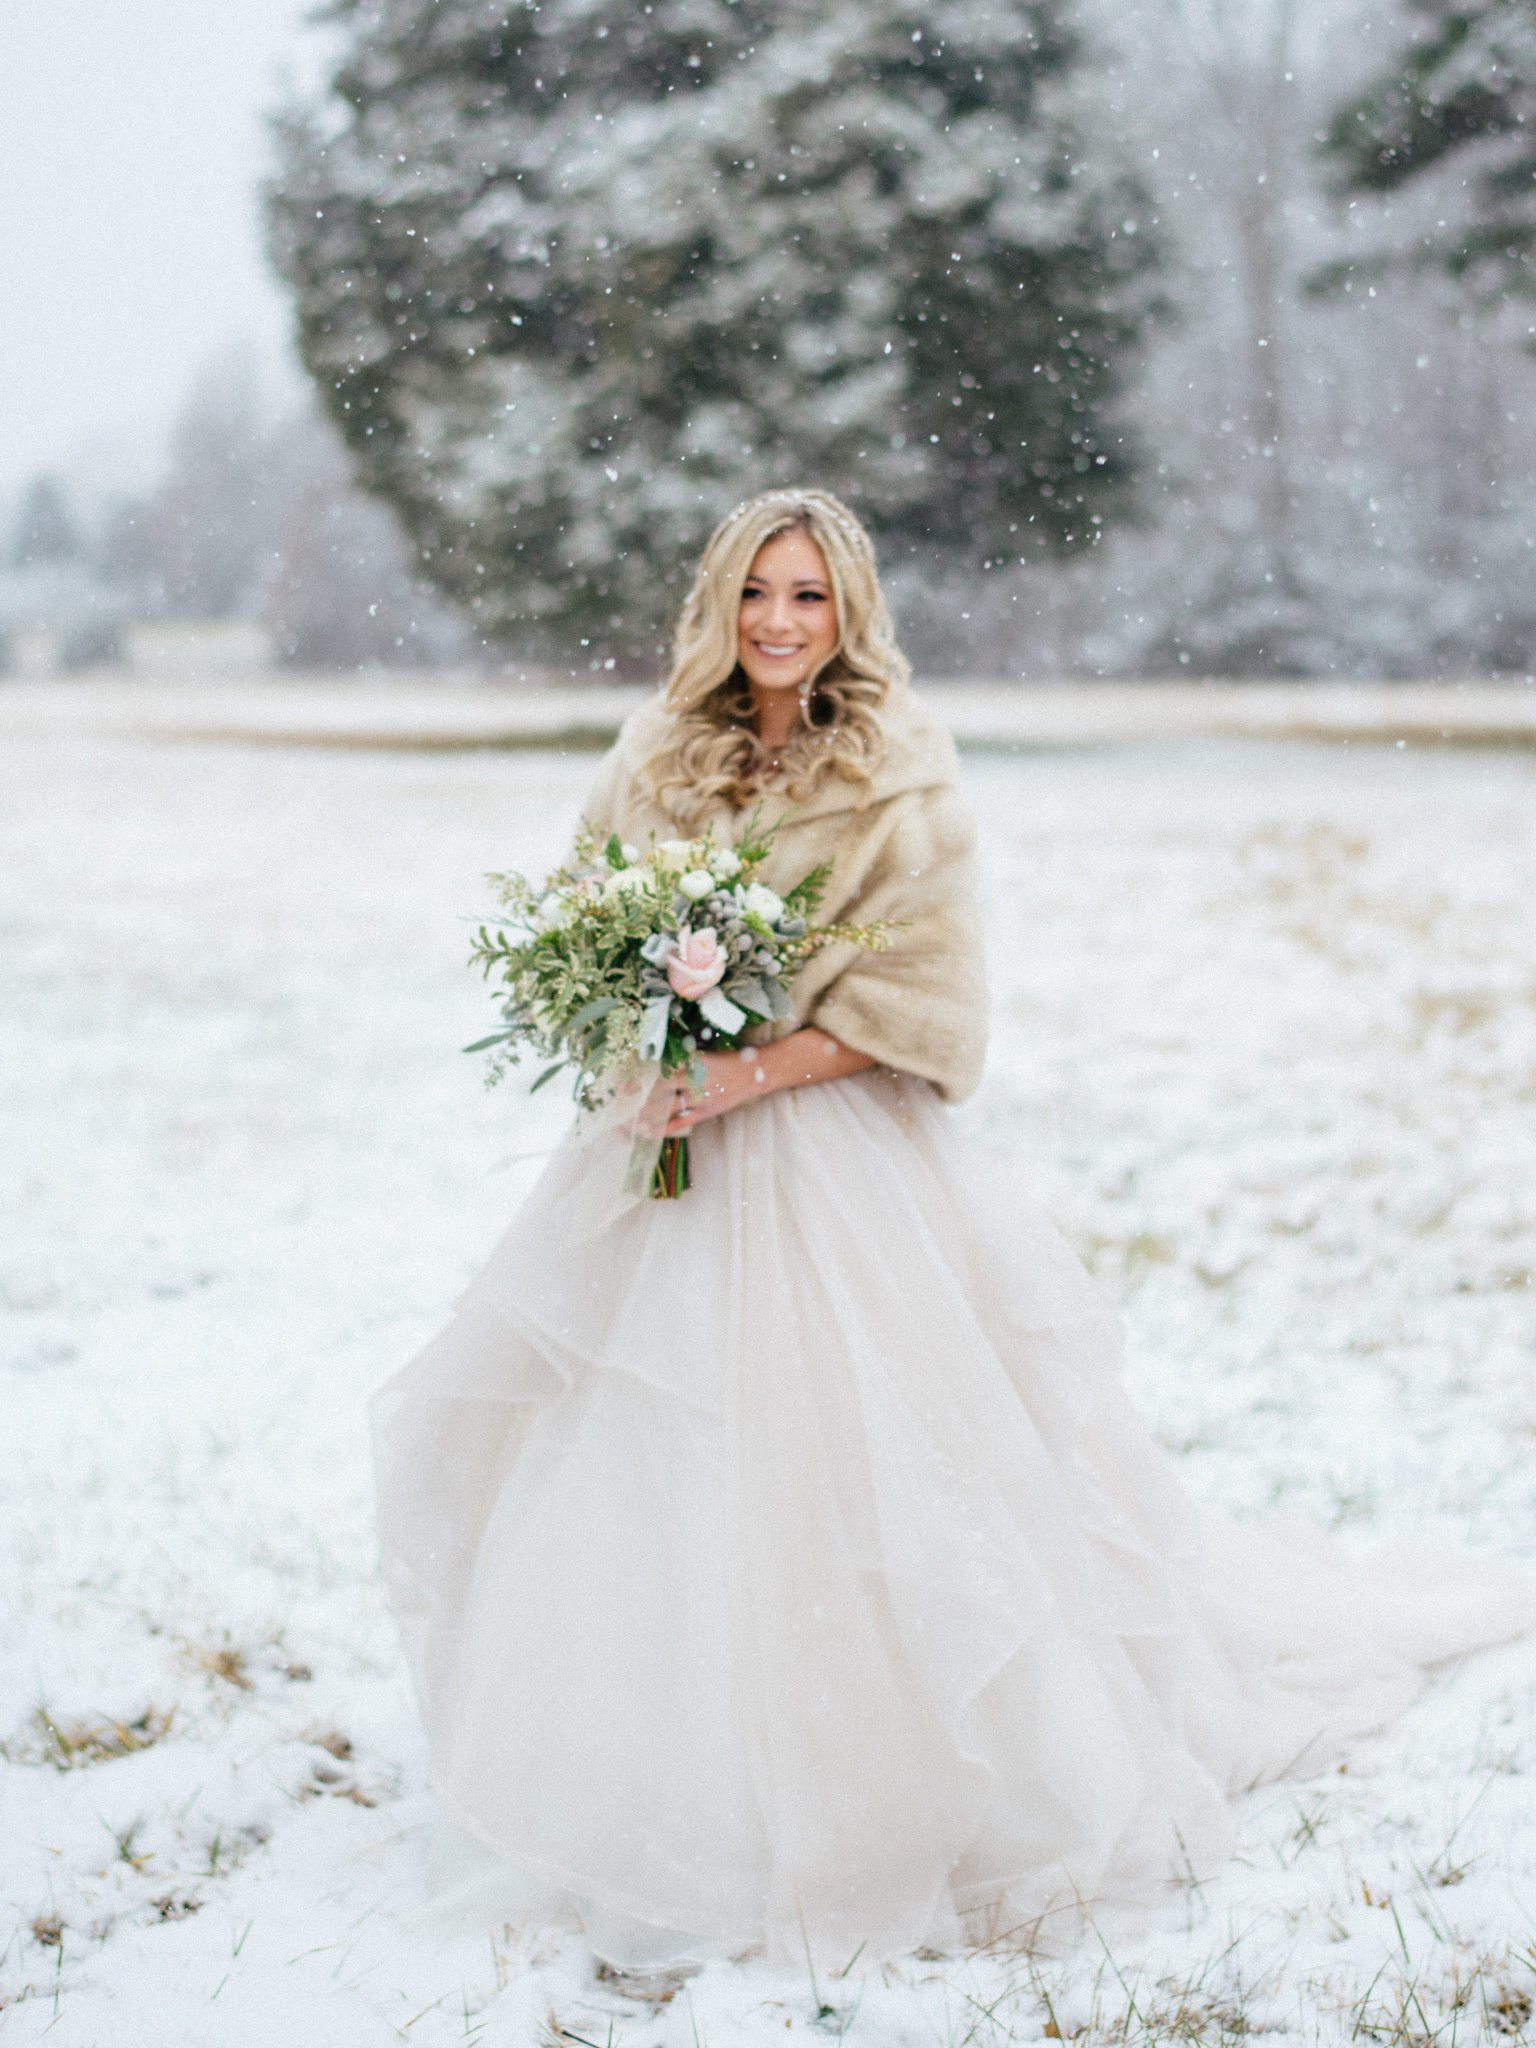 KimStockwellAshleyandMattMoraisVIneyardWedding218 Winter Weddings - A Snow Fairy Tale